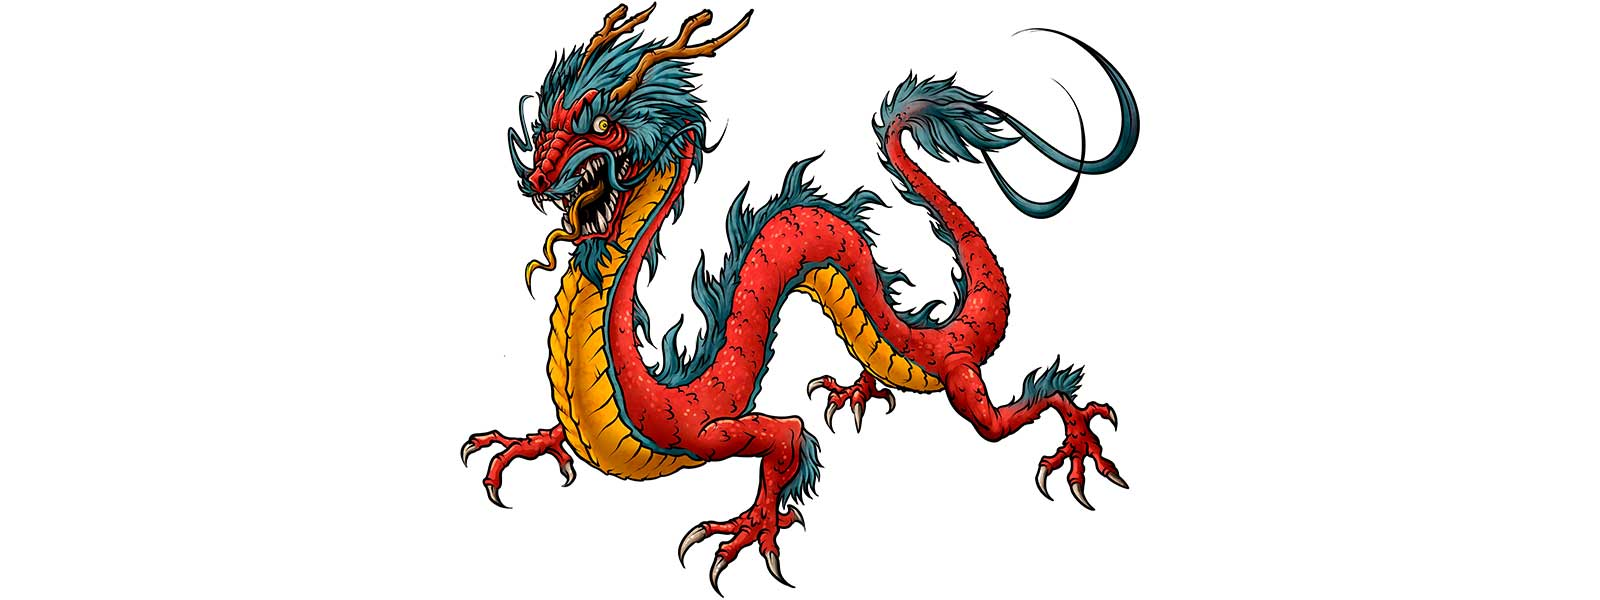 Dessin dragon japonais rouge